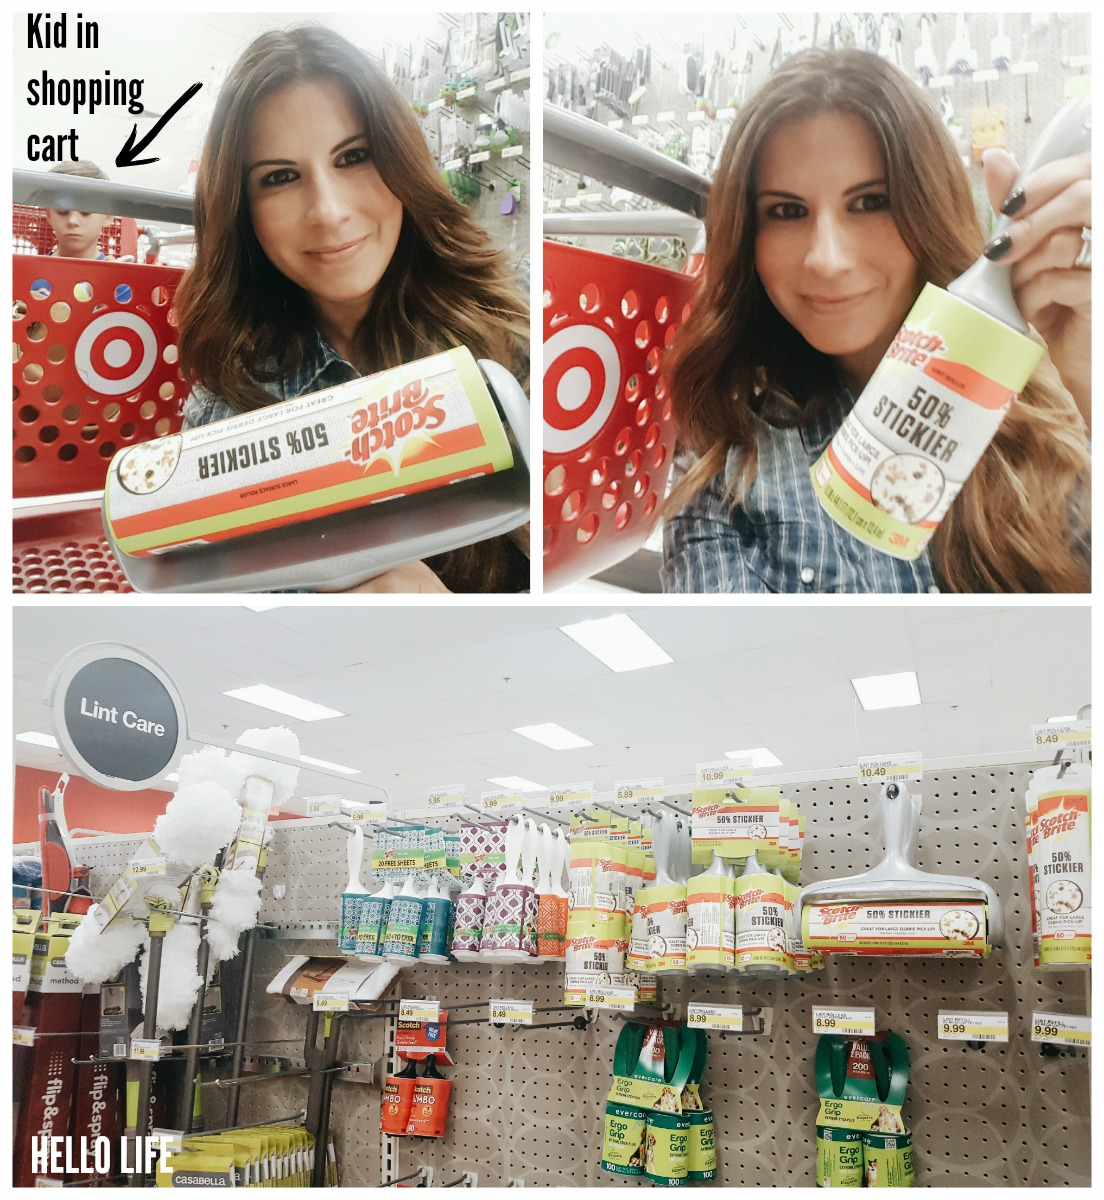 shopping-for-scotch-brite-lint-roller-at-target-rollawaylint-ad